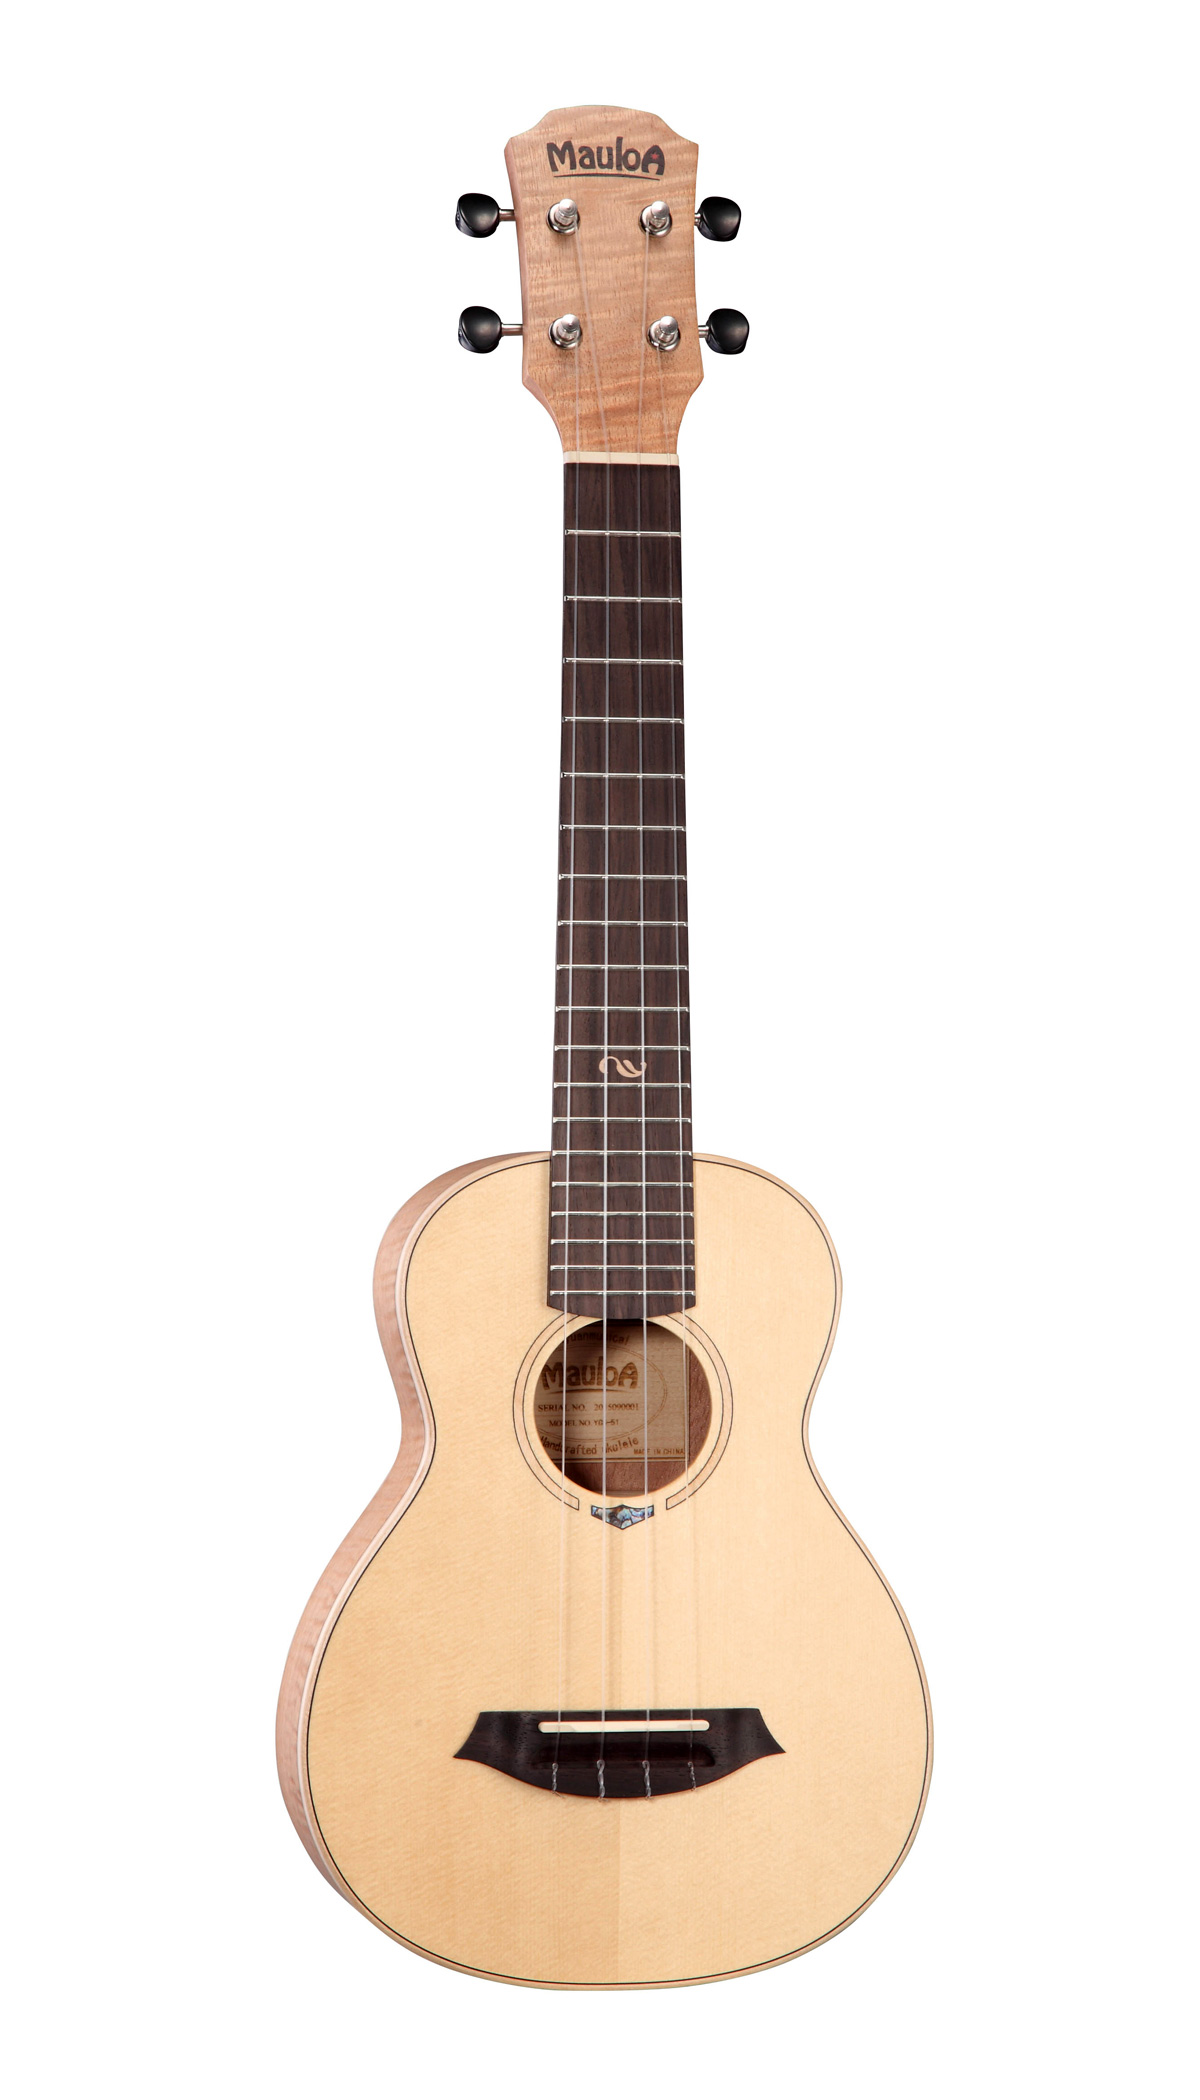 Top Solid Spruce,Flamed Okume Plywood,New Body